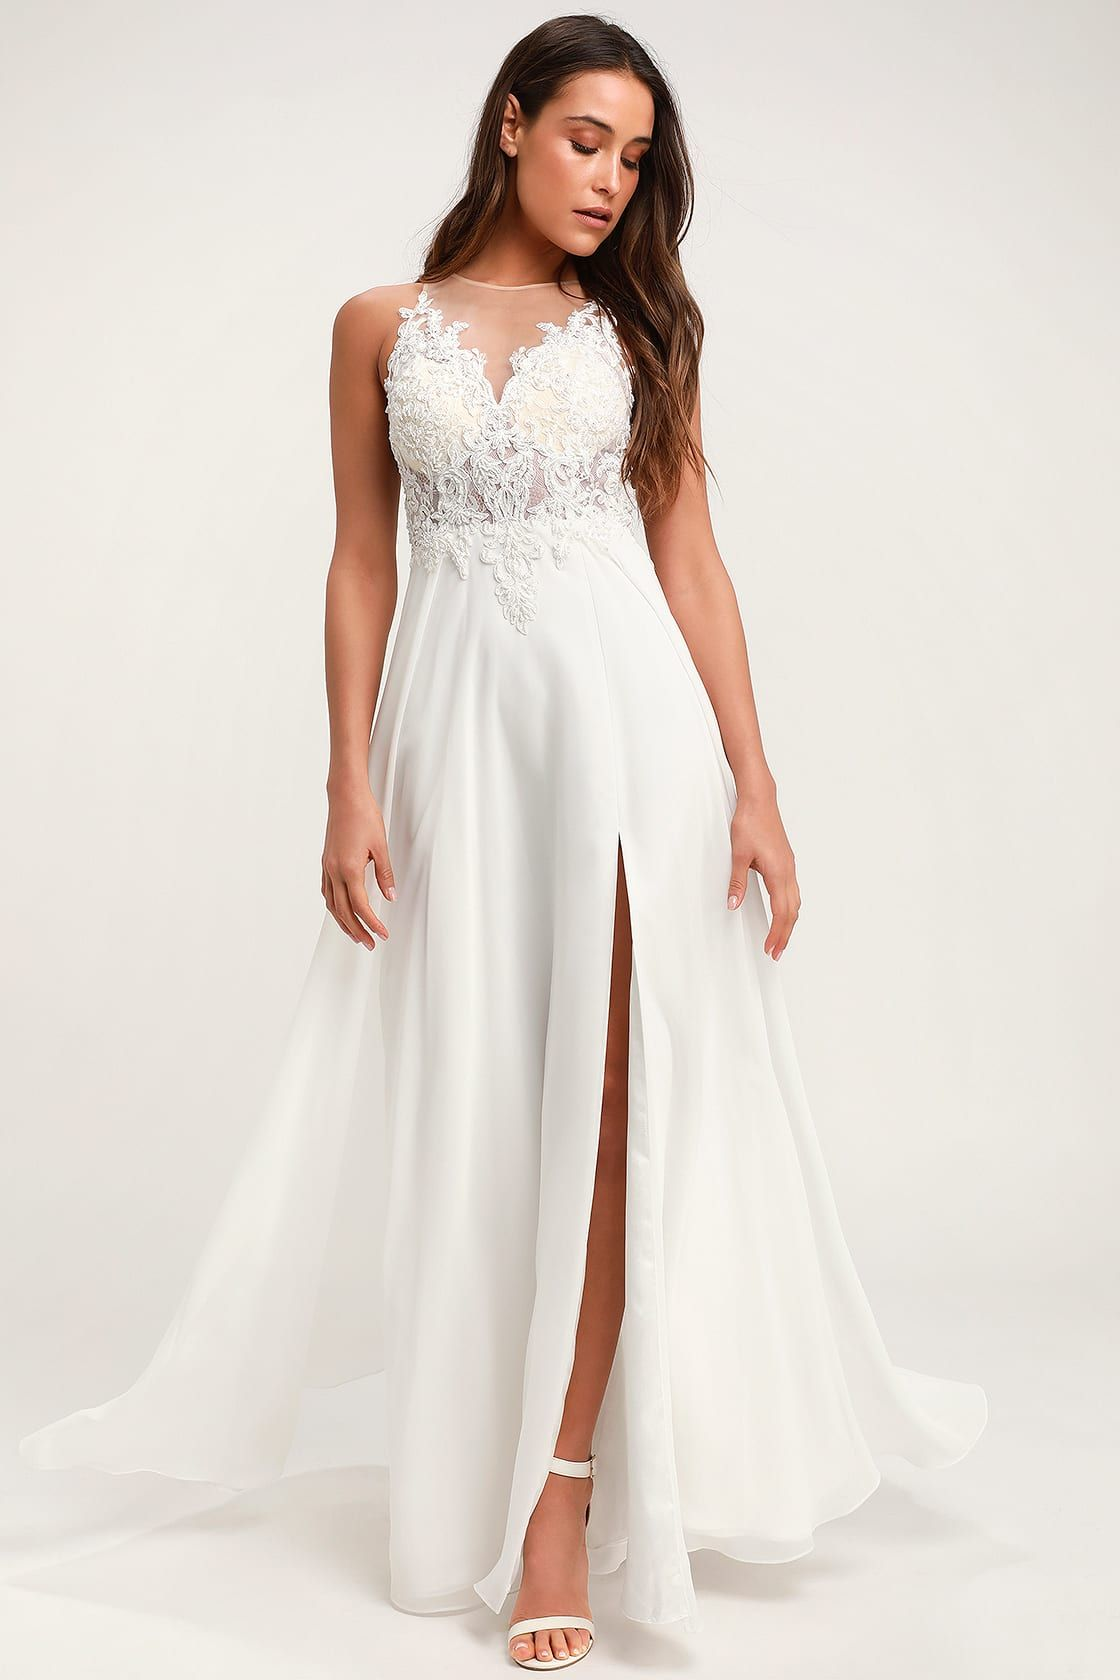 bc80697c8f Lulus | Moonlight Lover White Beaded Maxi Dress | Size 2 | 100 ...